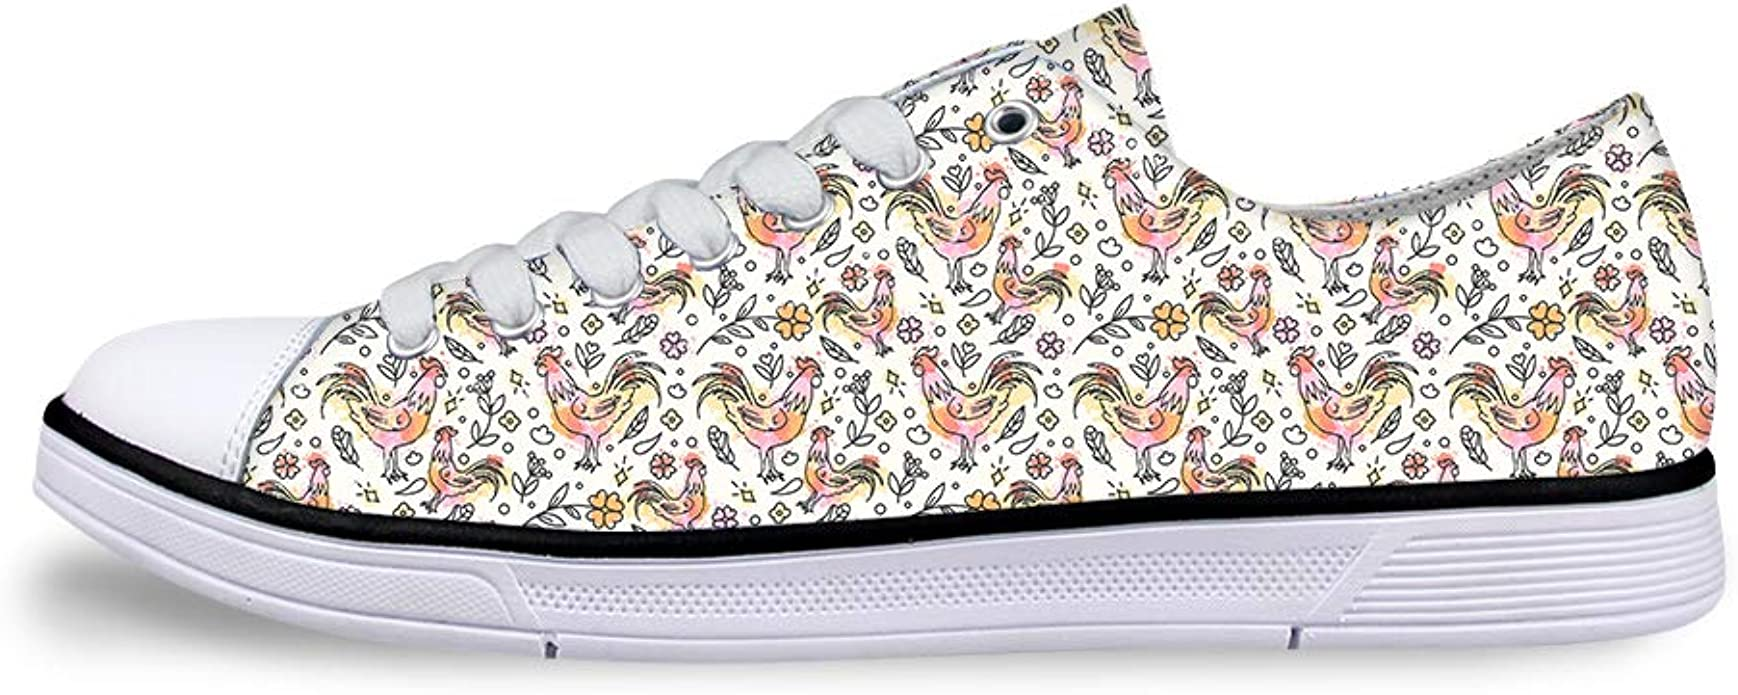 Boys Girls Casual Lace-up Sneakers Running Shoes Paint Floral Mighty Cock Rooster